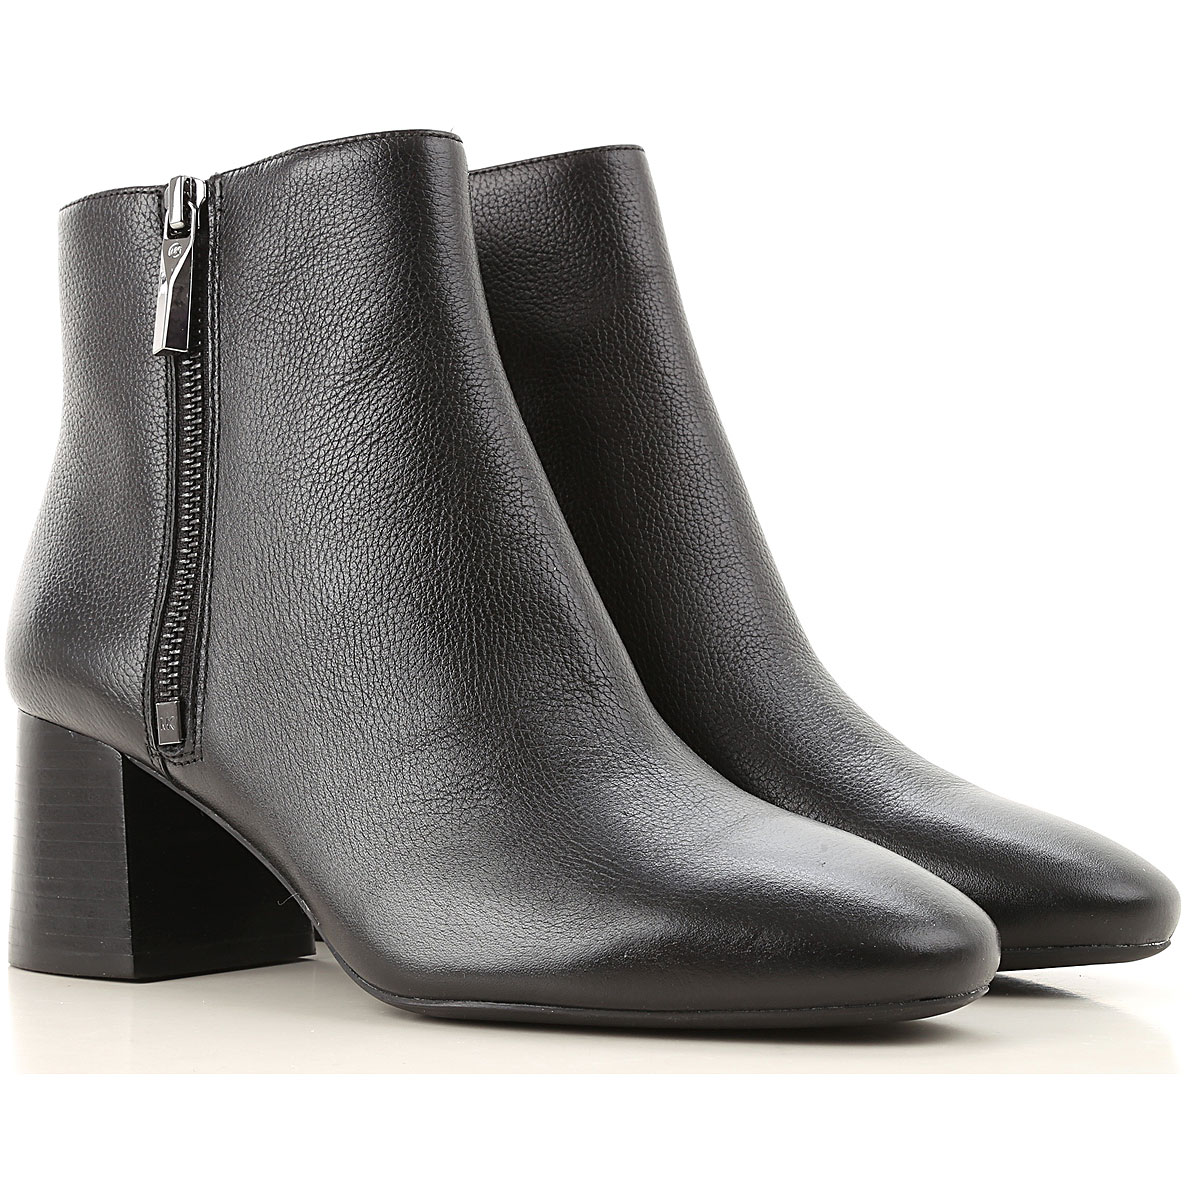 Michael Kors Boots for Women, Booties On Sale, Black, Leather, 2019, 10 6 9